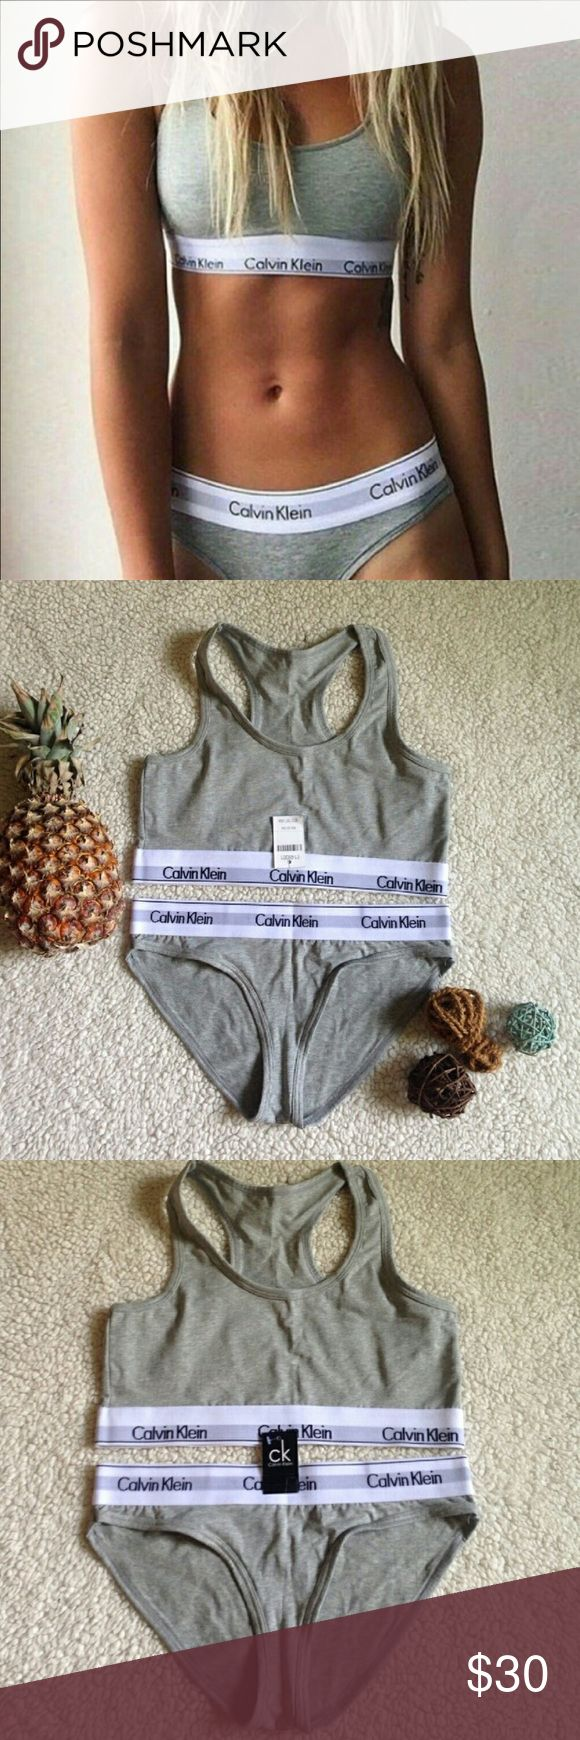 Gray Calvin Klein medium bra and panty set New with tag! Buttery soft, perfect for lounging. Never worn or tried on. No damages or issues. Highly sought after. Calvin Klein Underwear Intimates & Sleepwear Bras